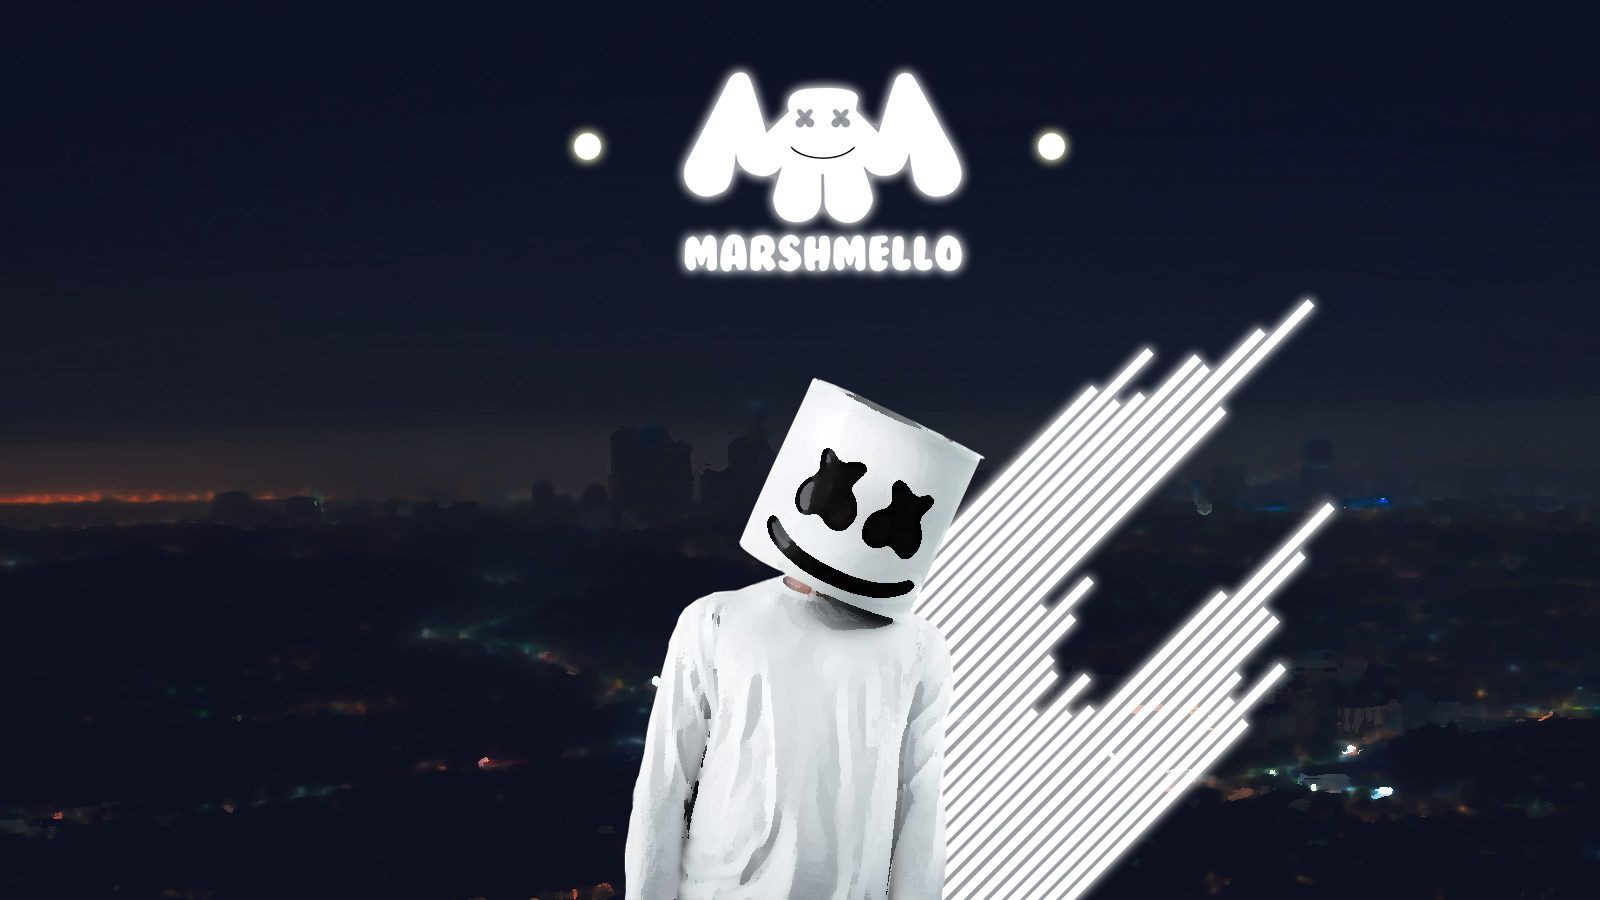 Marshmello Wallpapers UHD